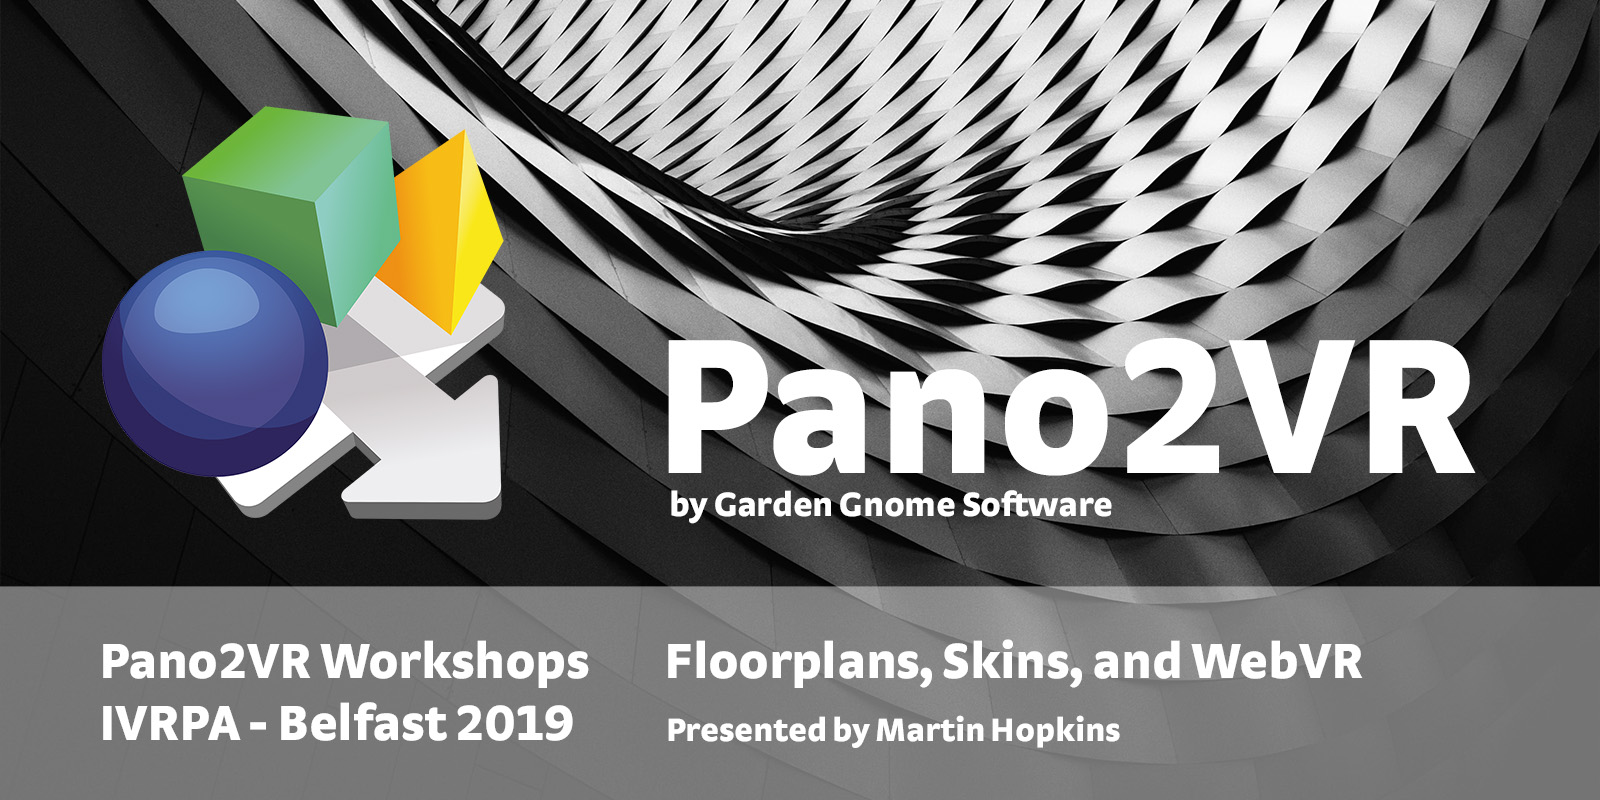 Pano2VR Workshops